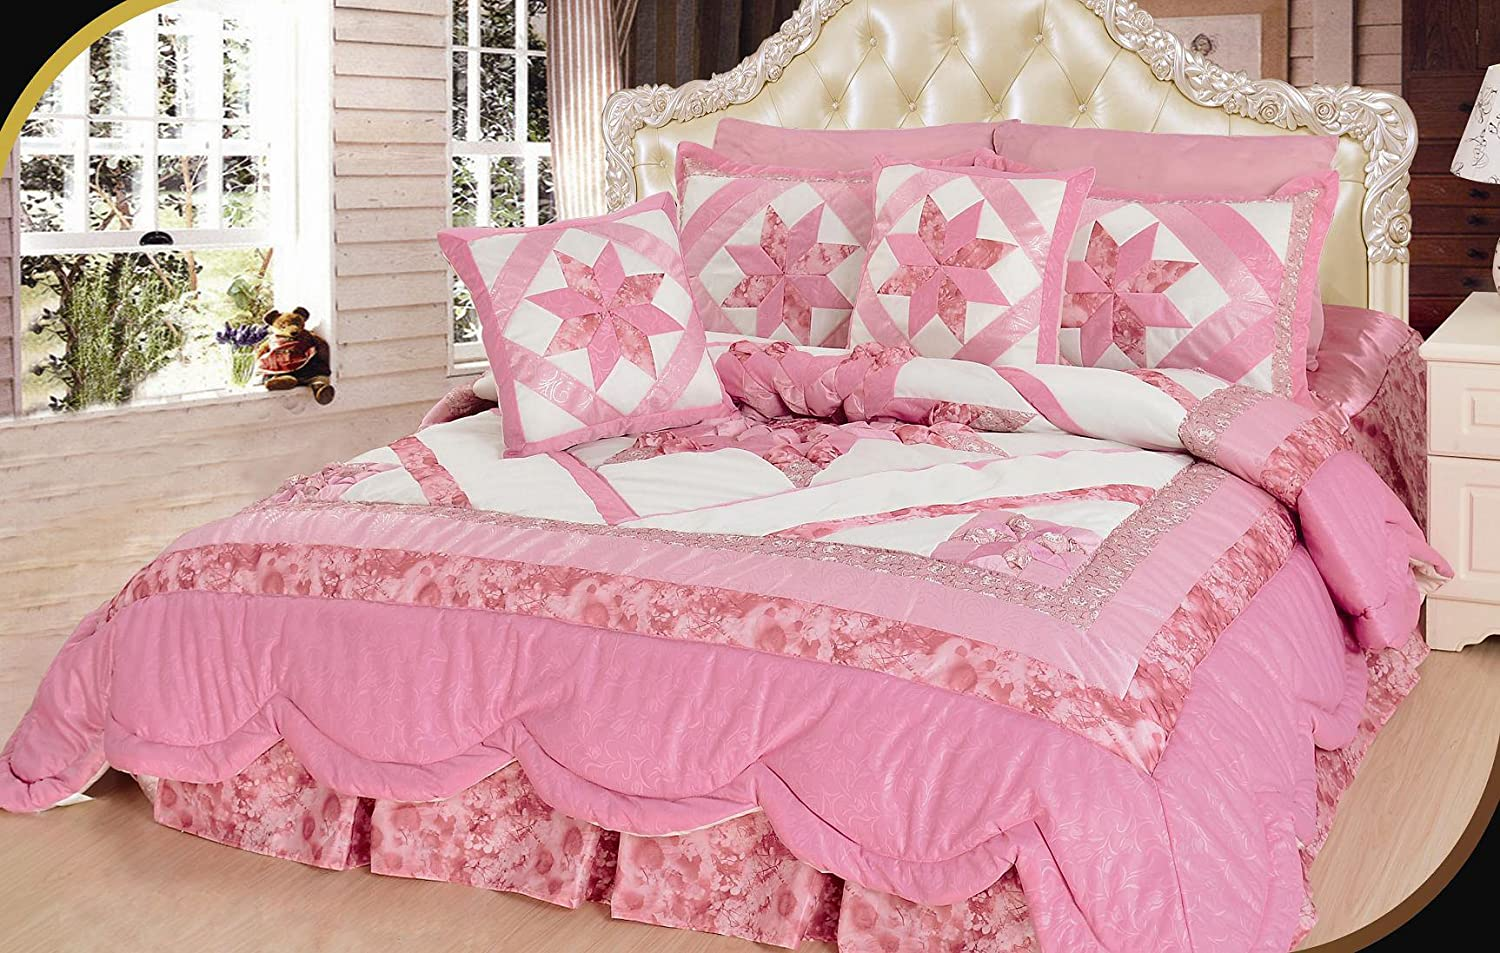 DaDa Bedding BM928L-1 5 Piece Quilt Set, California King, Patchwork, Pink DaDa Bedding Collection Inc.